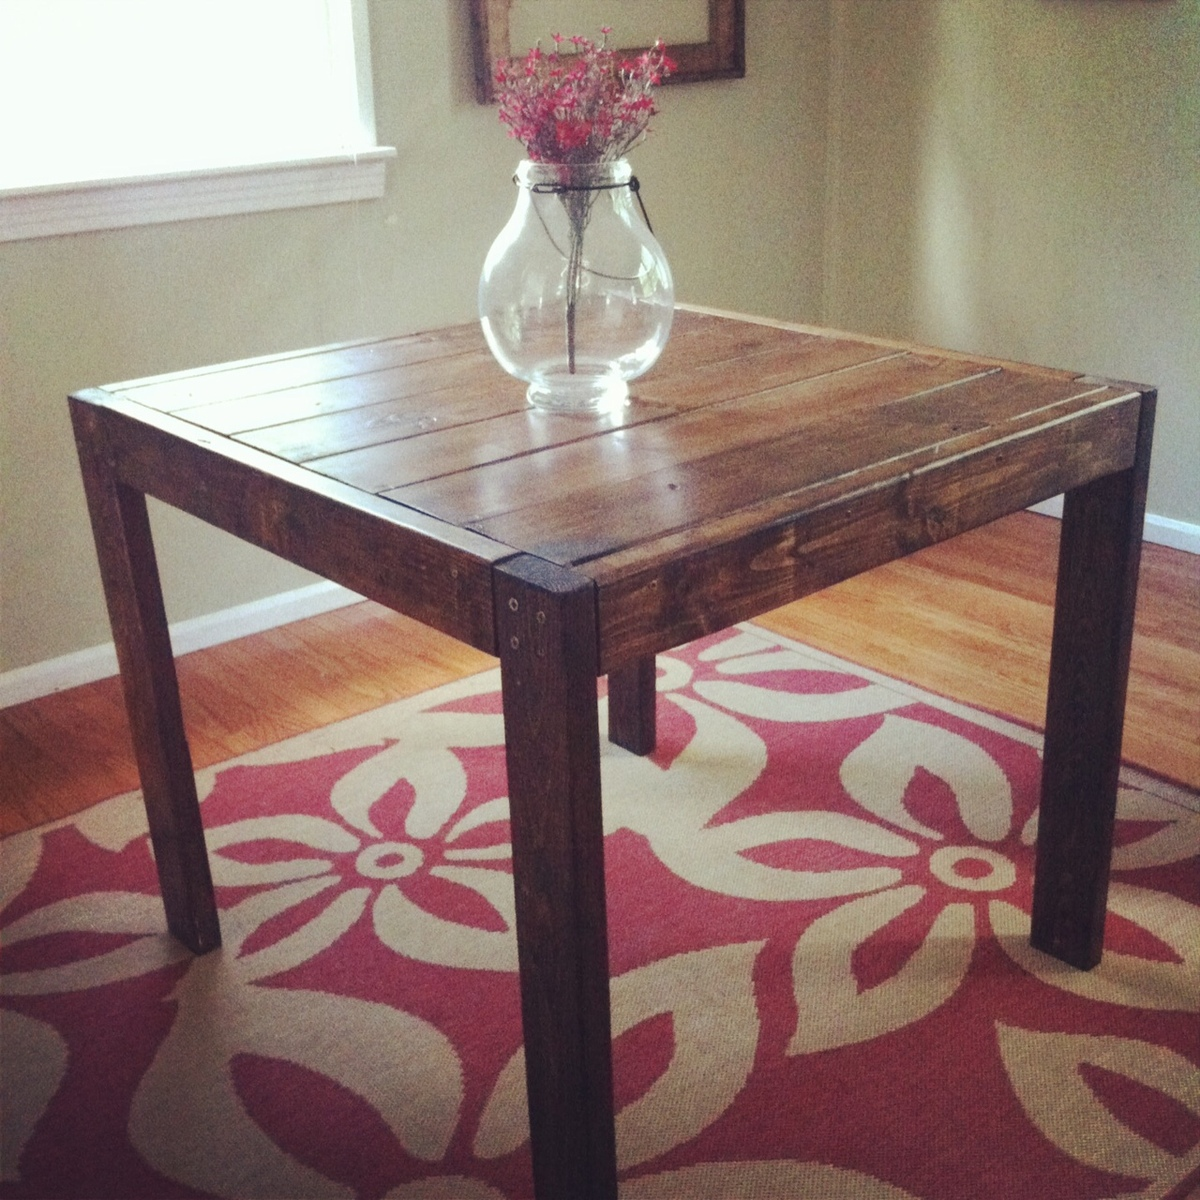 Bench Kitchen Tables On Pinterest: Farmhouse Table- Love It! - DIY Projects